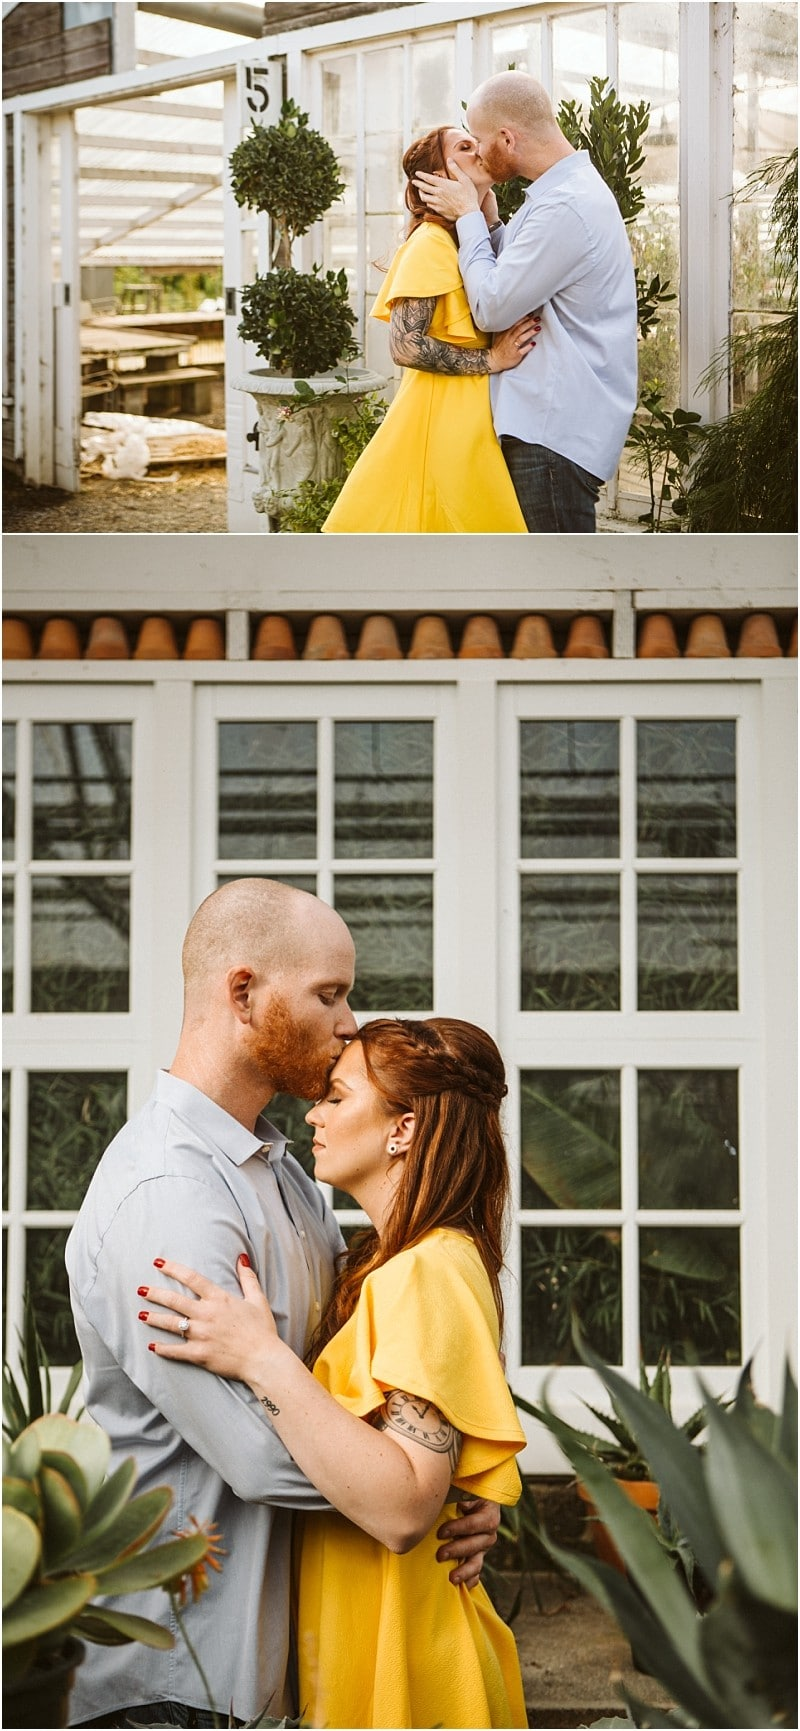 snohomish wedding photo 6035 2 by GSquared Weddings Photography